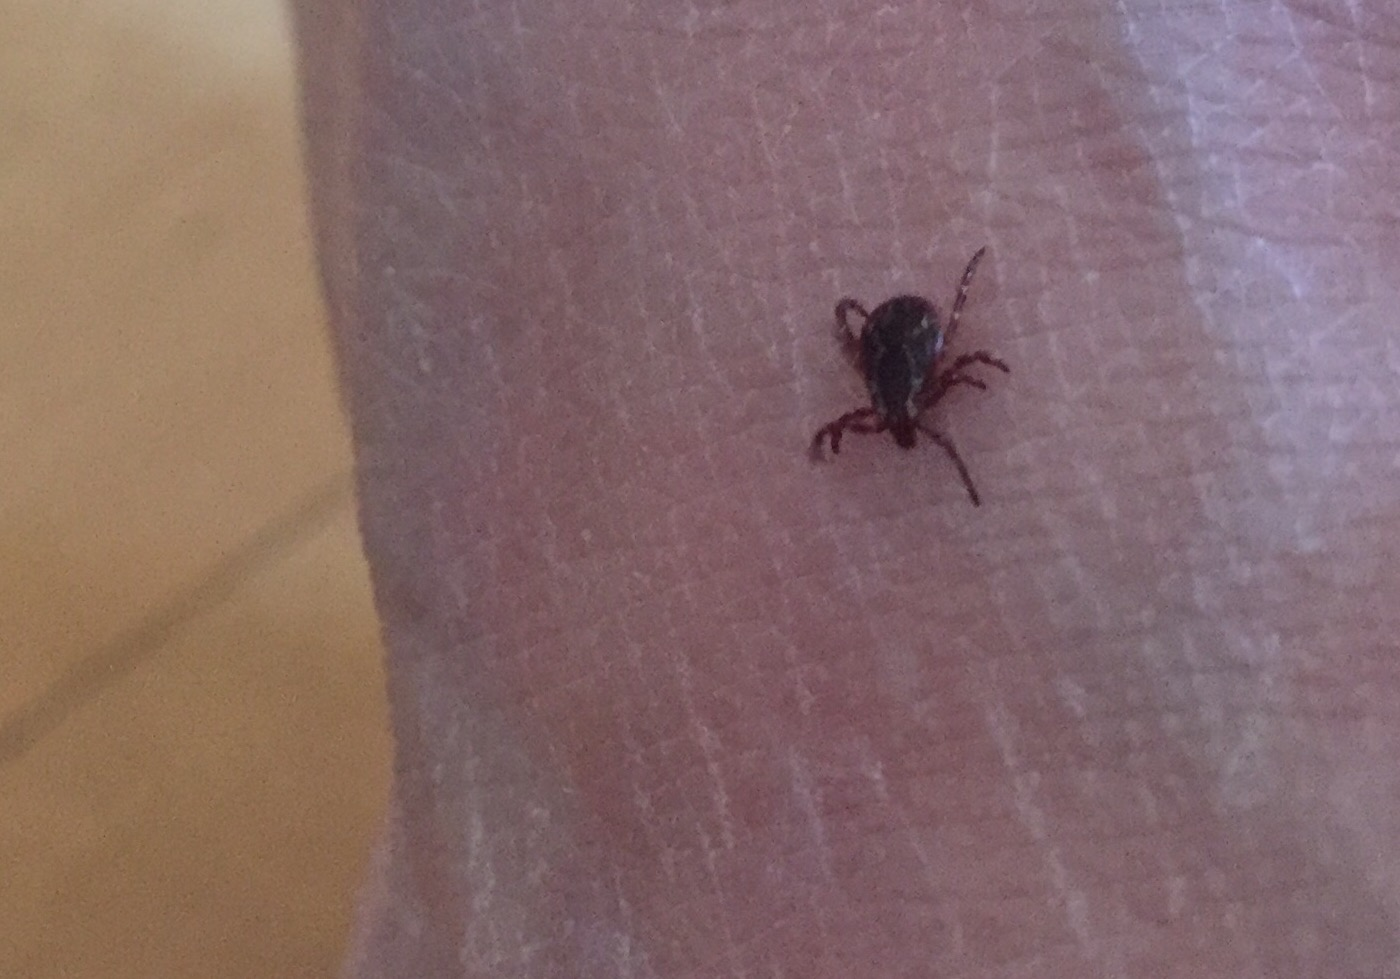 New 6-minute plan to remove ticks from clothes